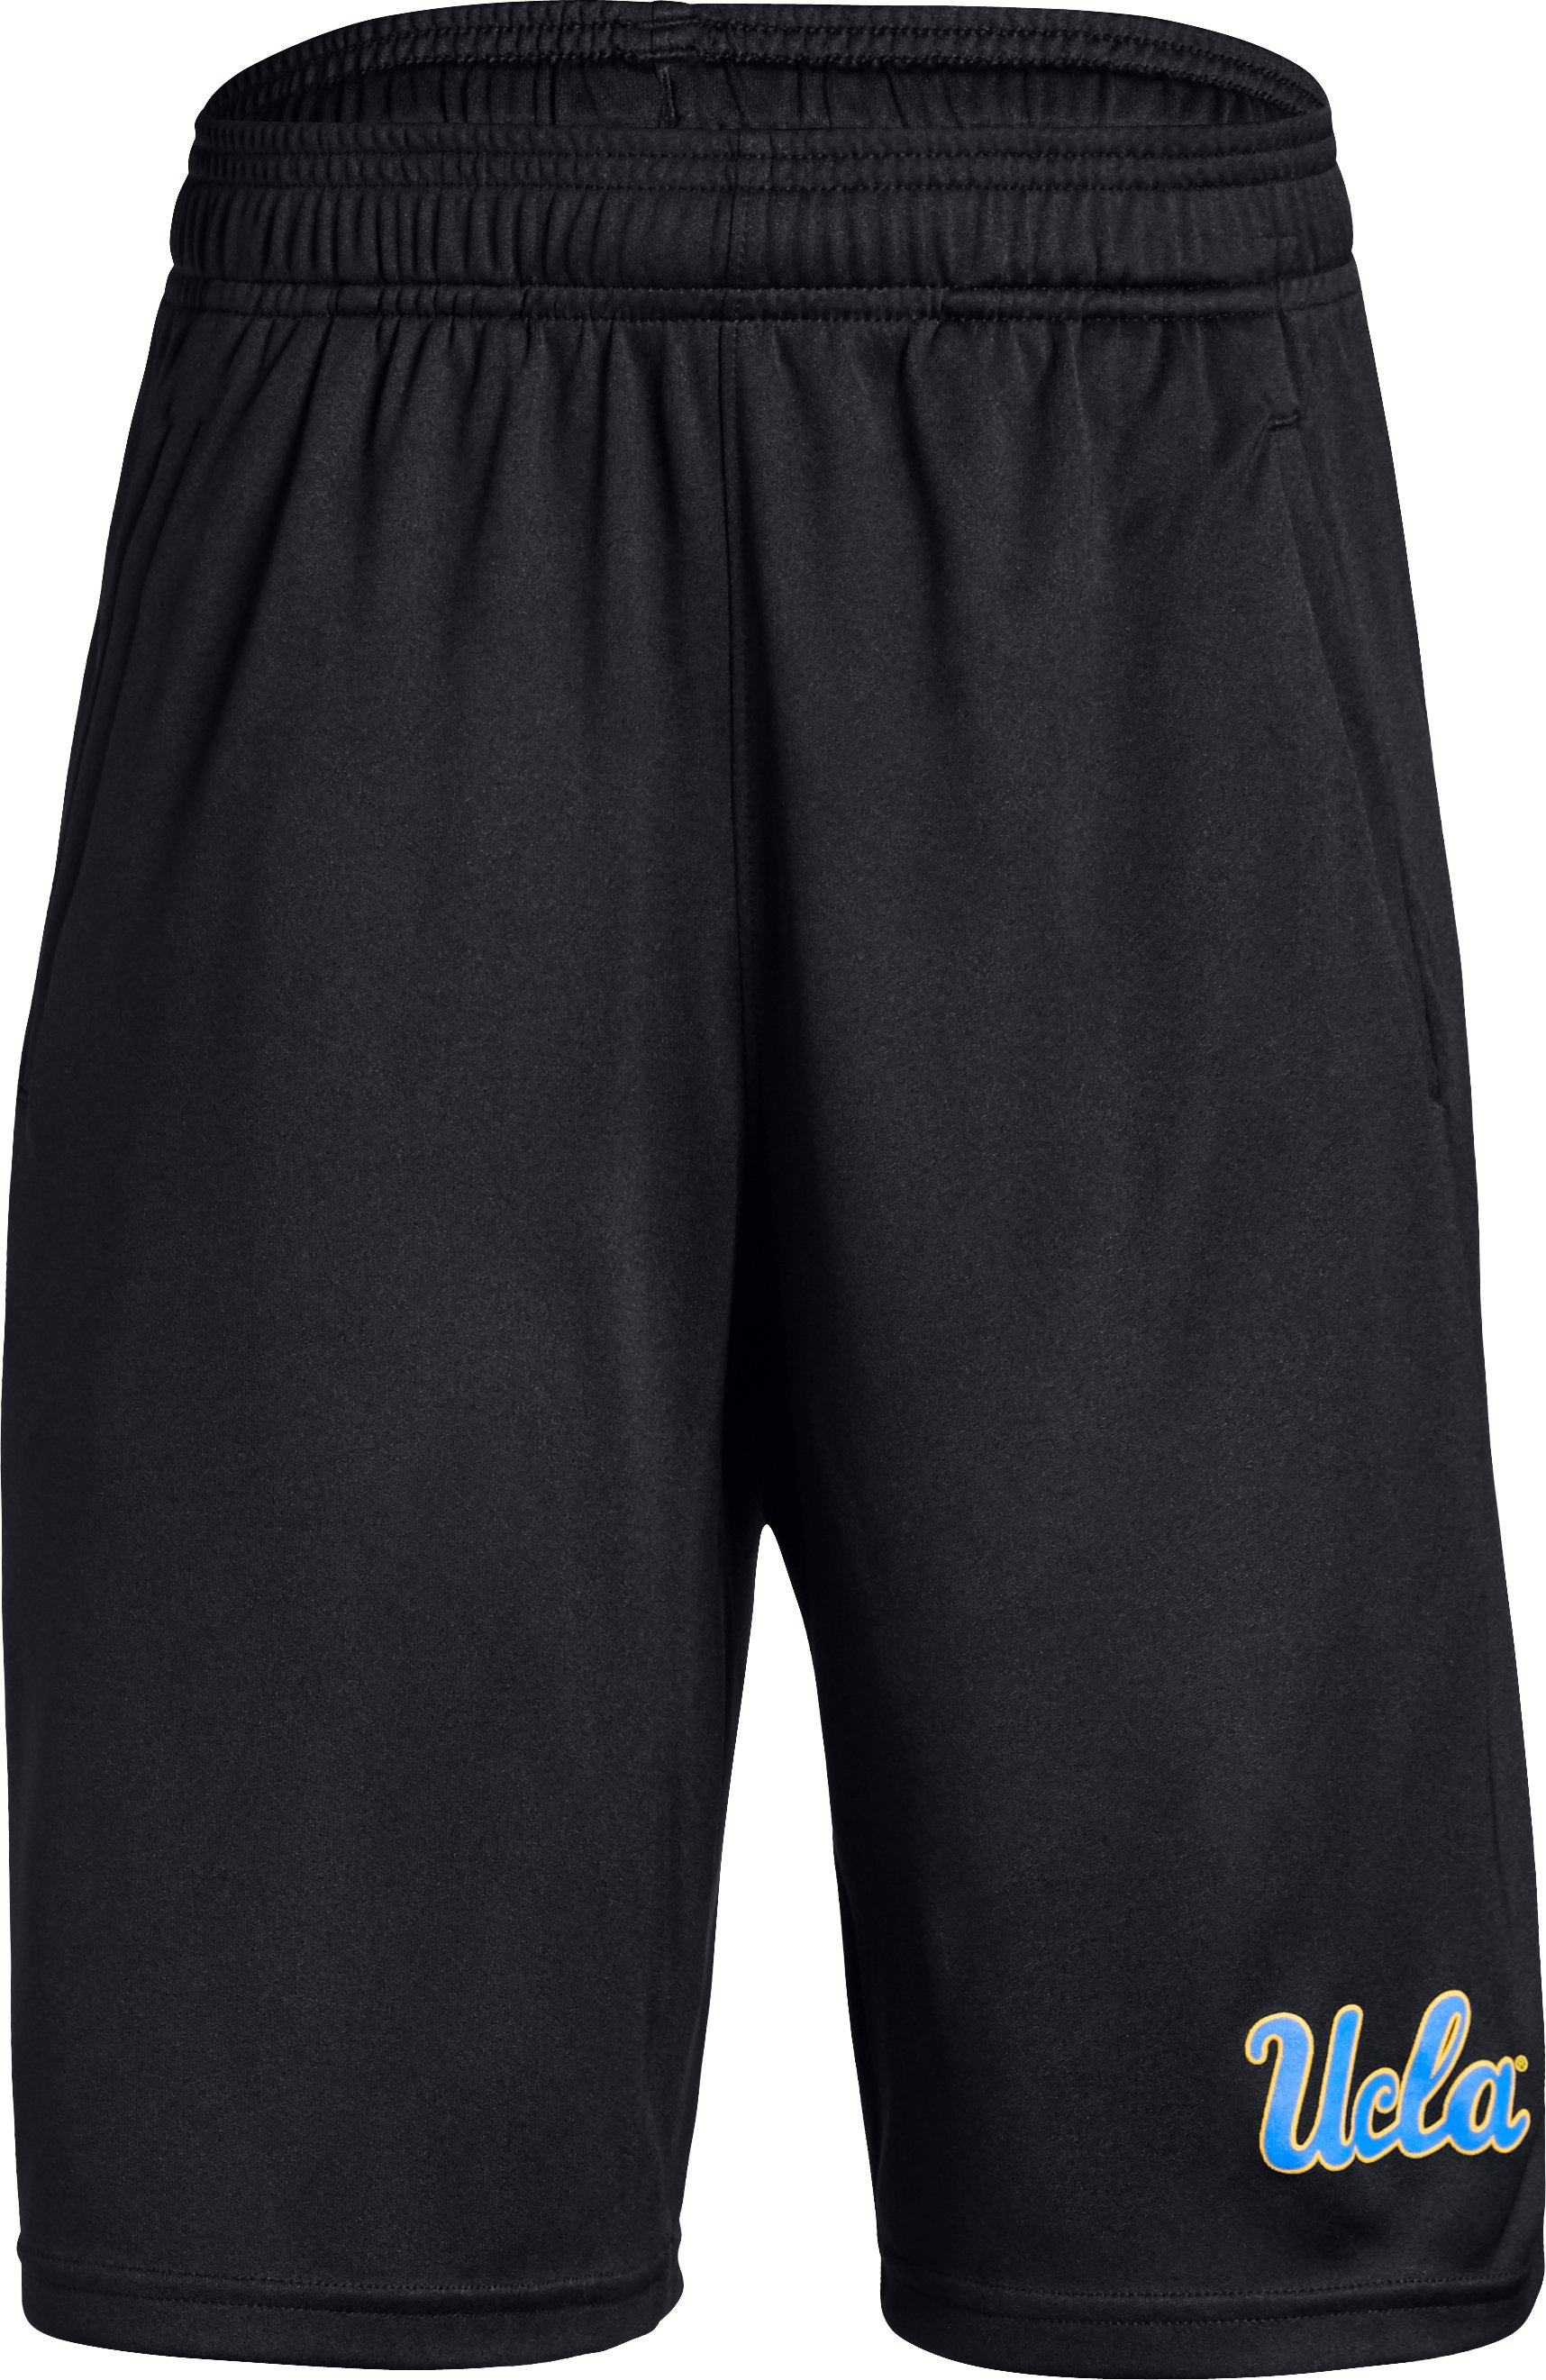 Boys' UA Intimidator Collegiate Shorts, Black